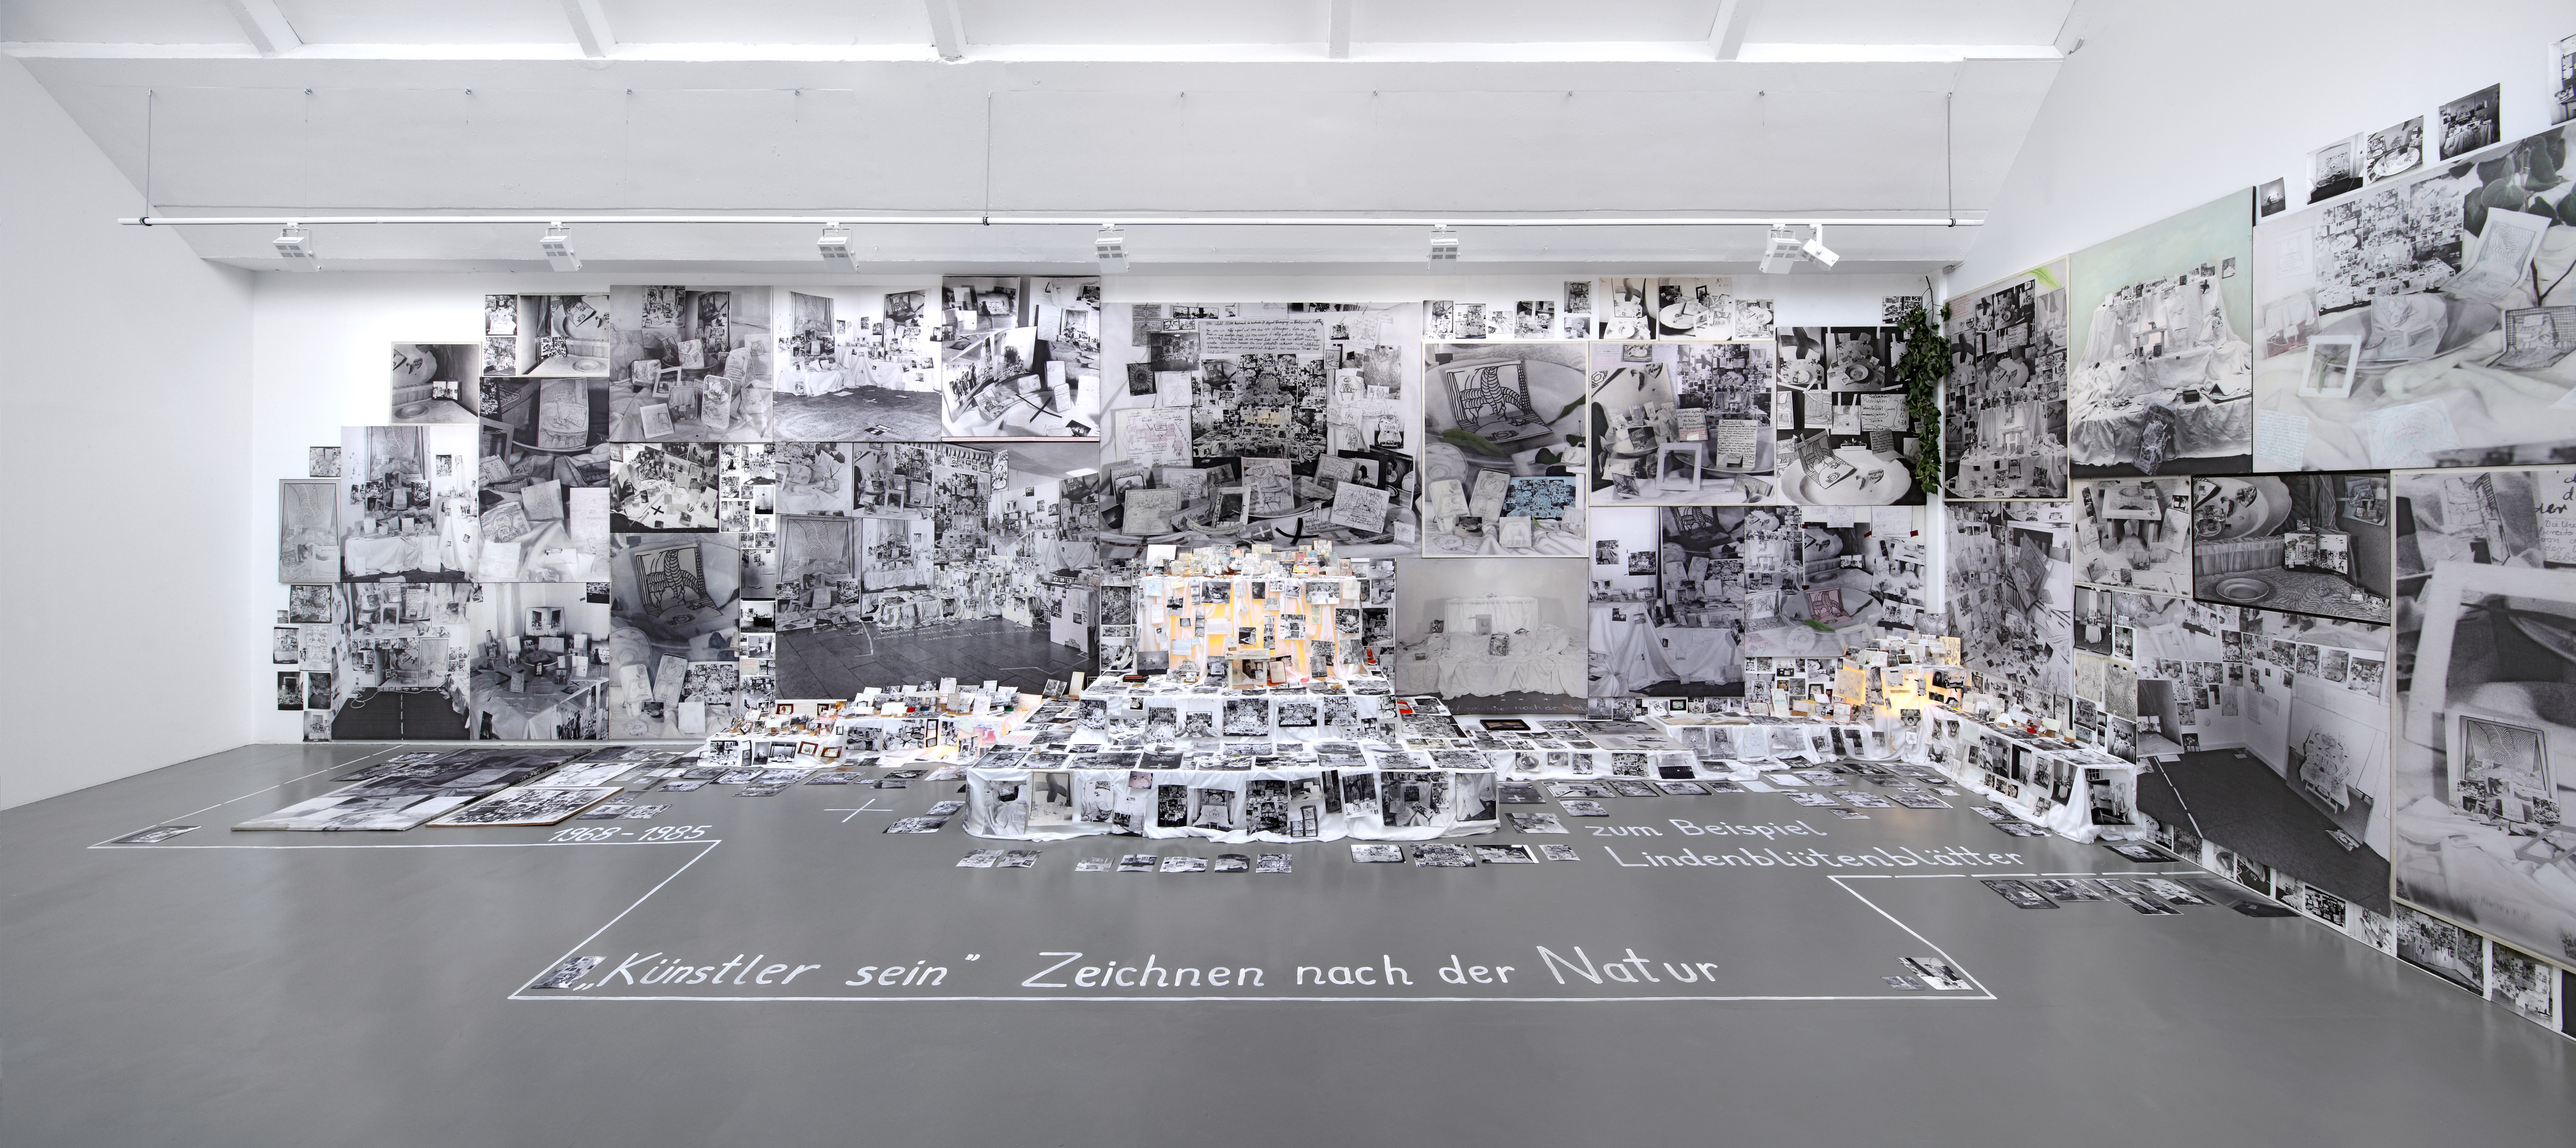 Galerie Barbara Thumm \ Anna Oppermann: Being an artist (Drawing from nature, for example linden blossom petals), 1969 – 1985 \ Being an Artist (Drawing from Nature, for Example, Linden Blossom Petals) (1969 – 1985)